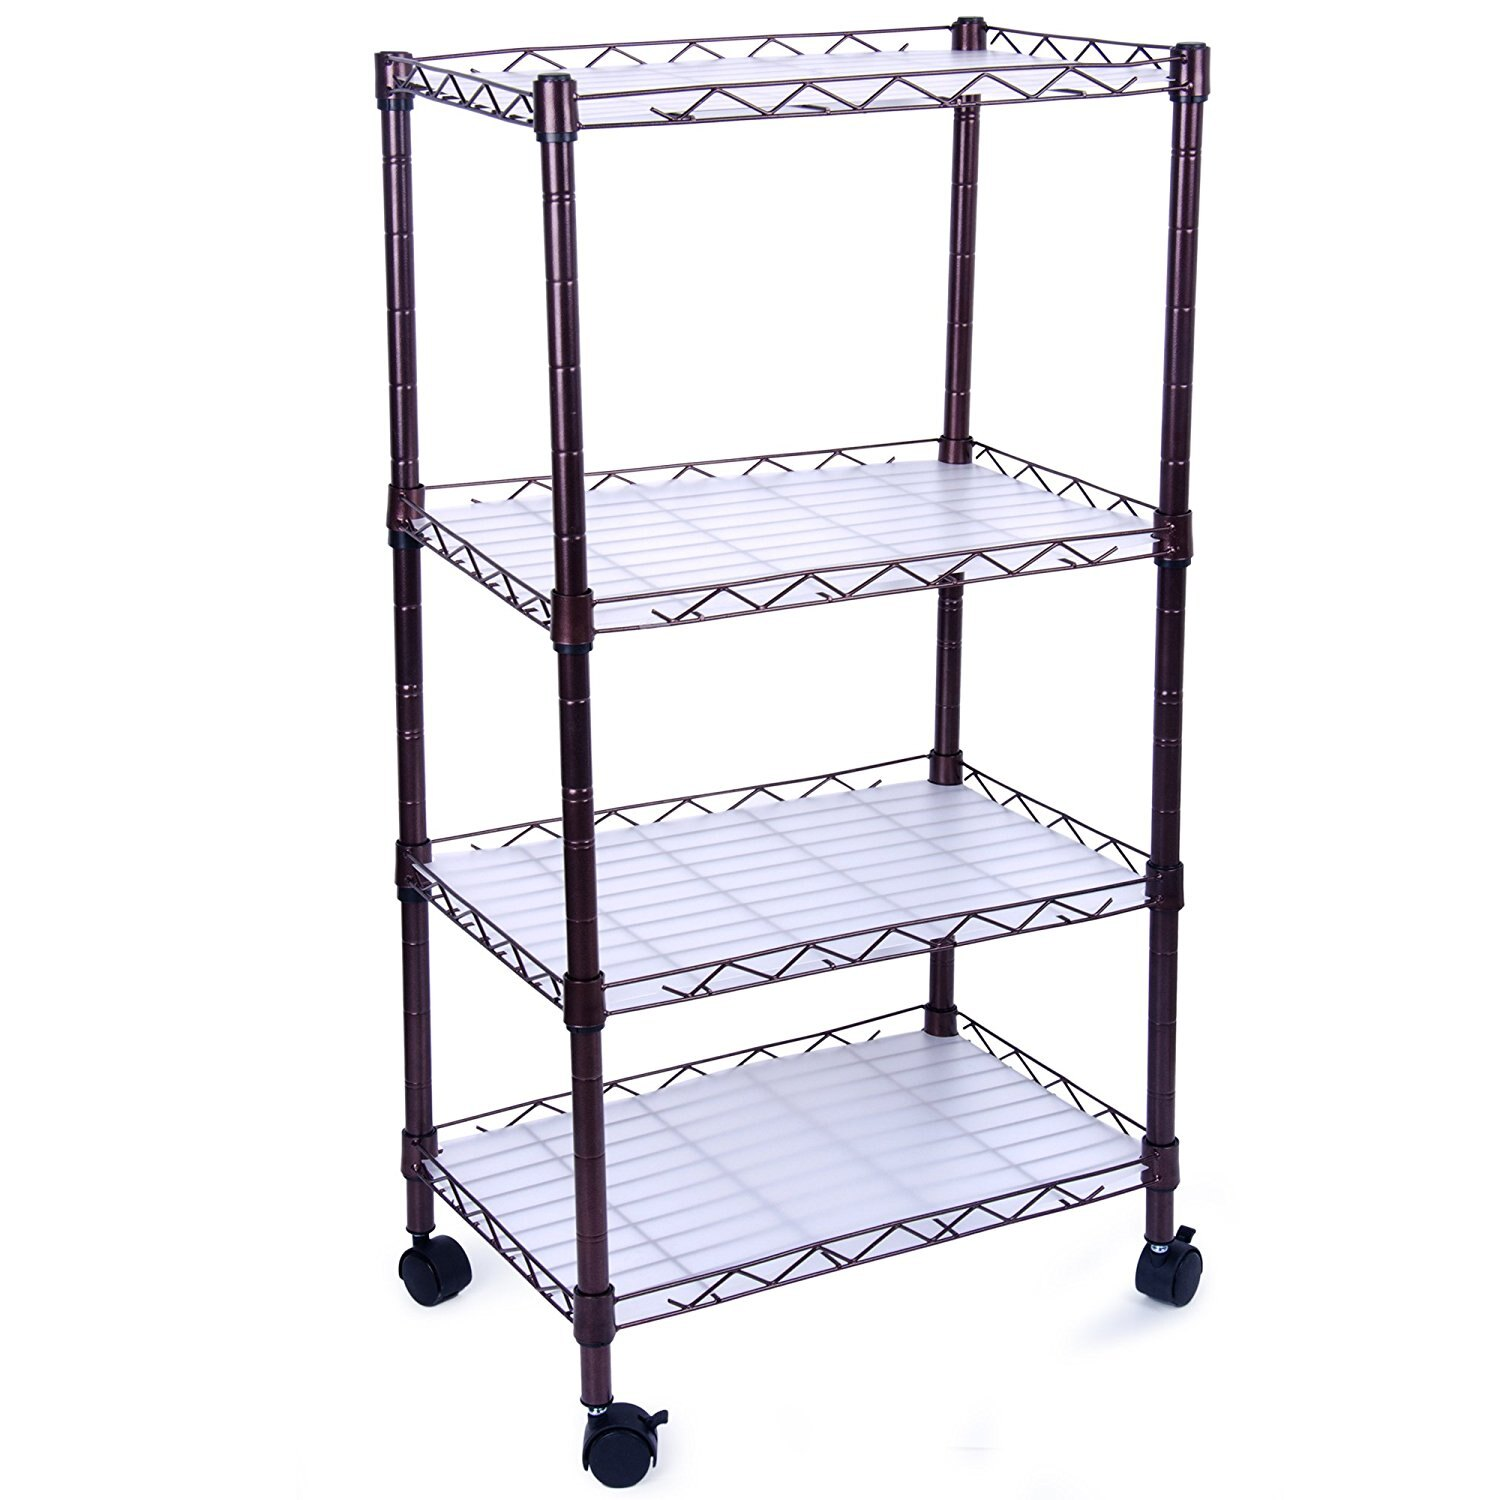 4 Tiers Adjustable Wire Metal Shelving Rack with Casters WSR04